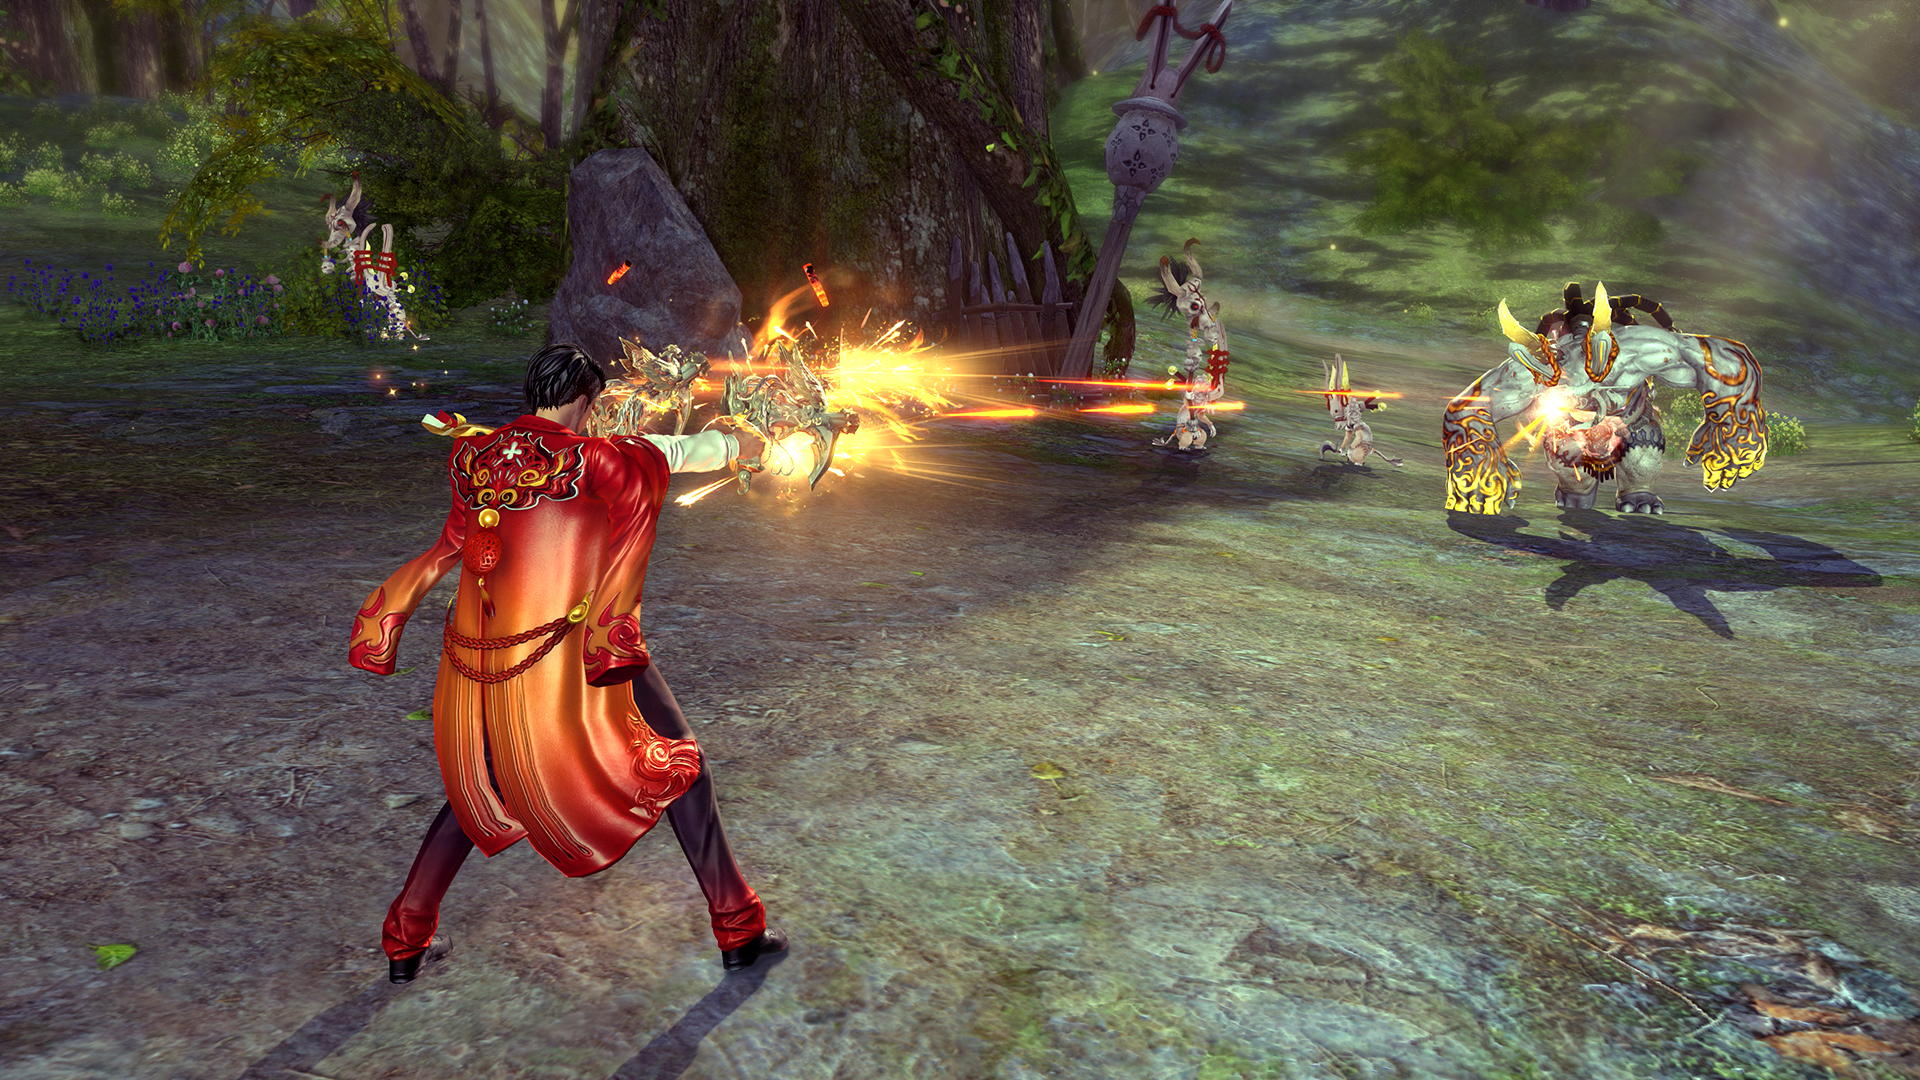 Blade & Soul is revamping crafting in the Rise of the